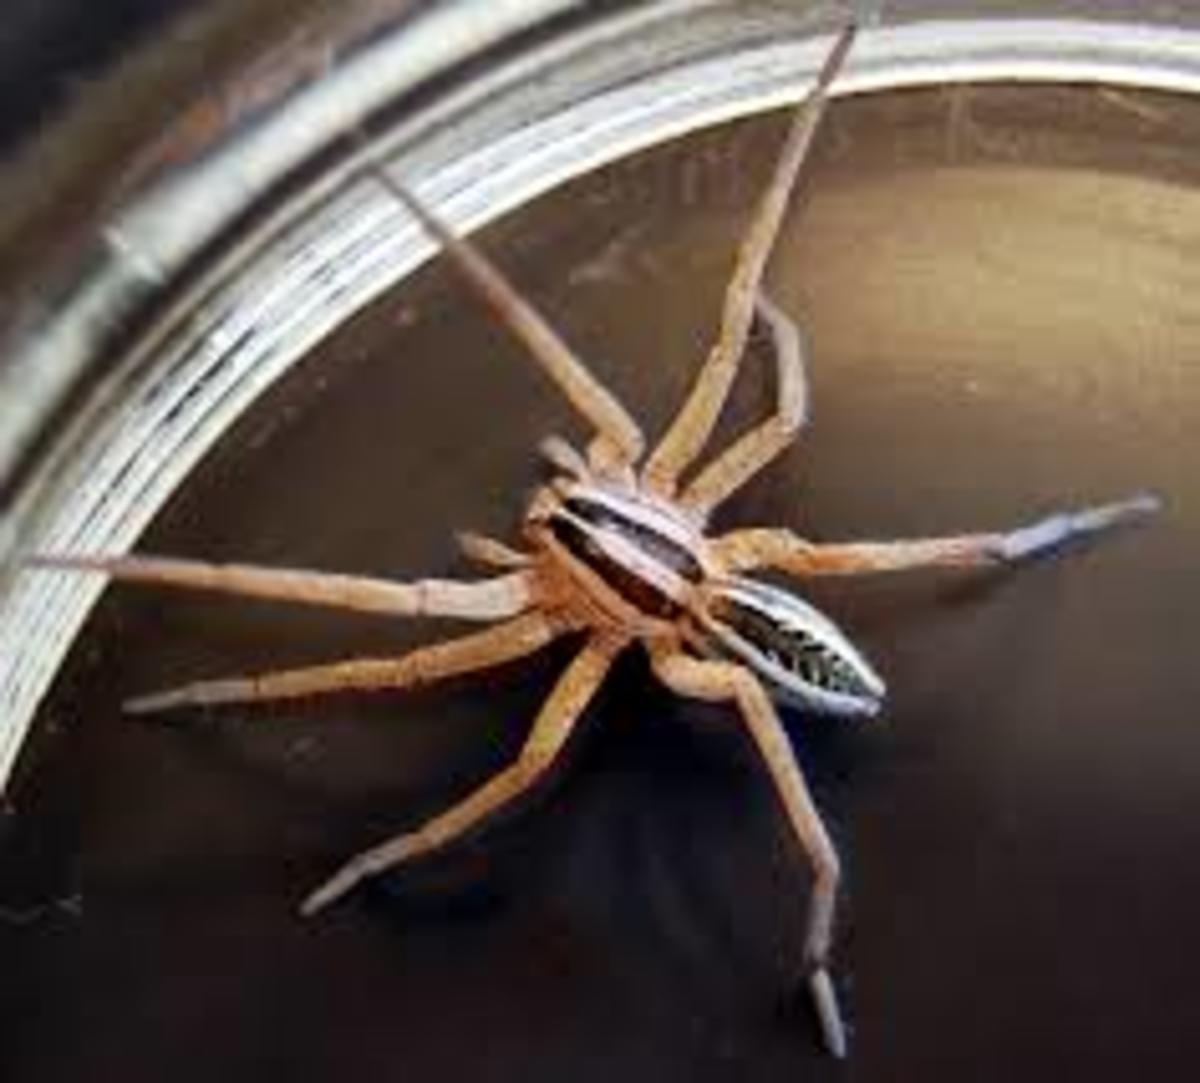 The Wolf Spider, Venomous, but Preys on More Dangerous Spiders.